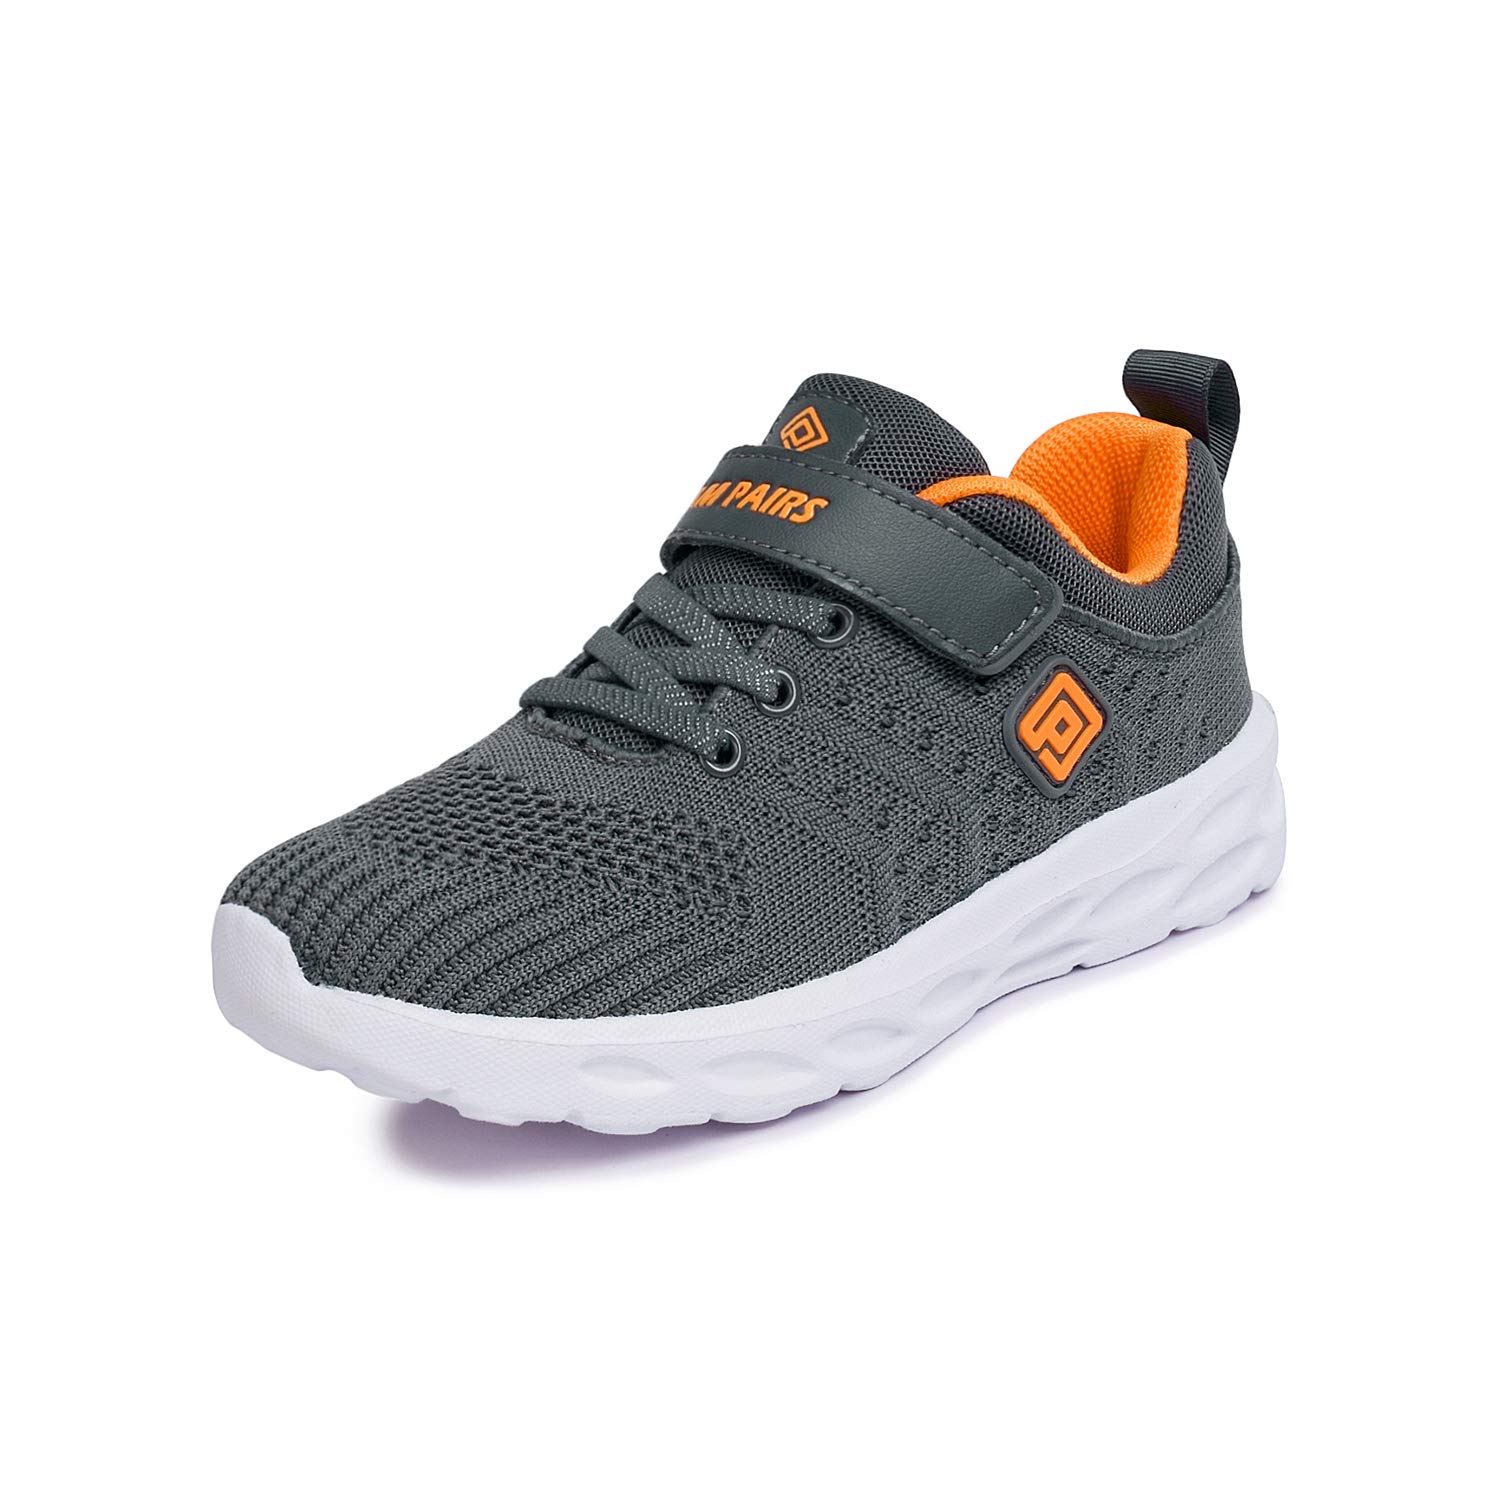 DREAM PAIRS Boys KD18001K Lightweight Breathable Running Athletic Sneakers Shoes Grey Orange, Size 5 M US Big Kid